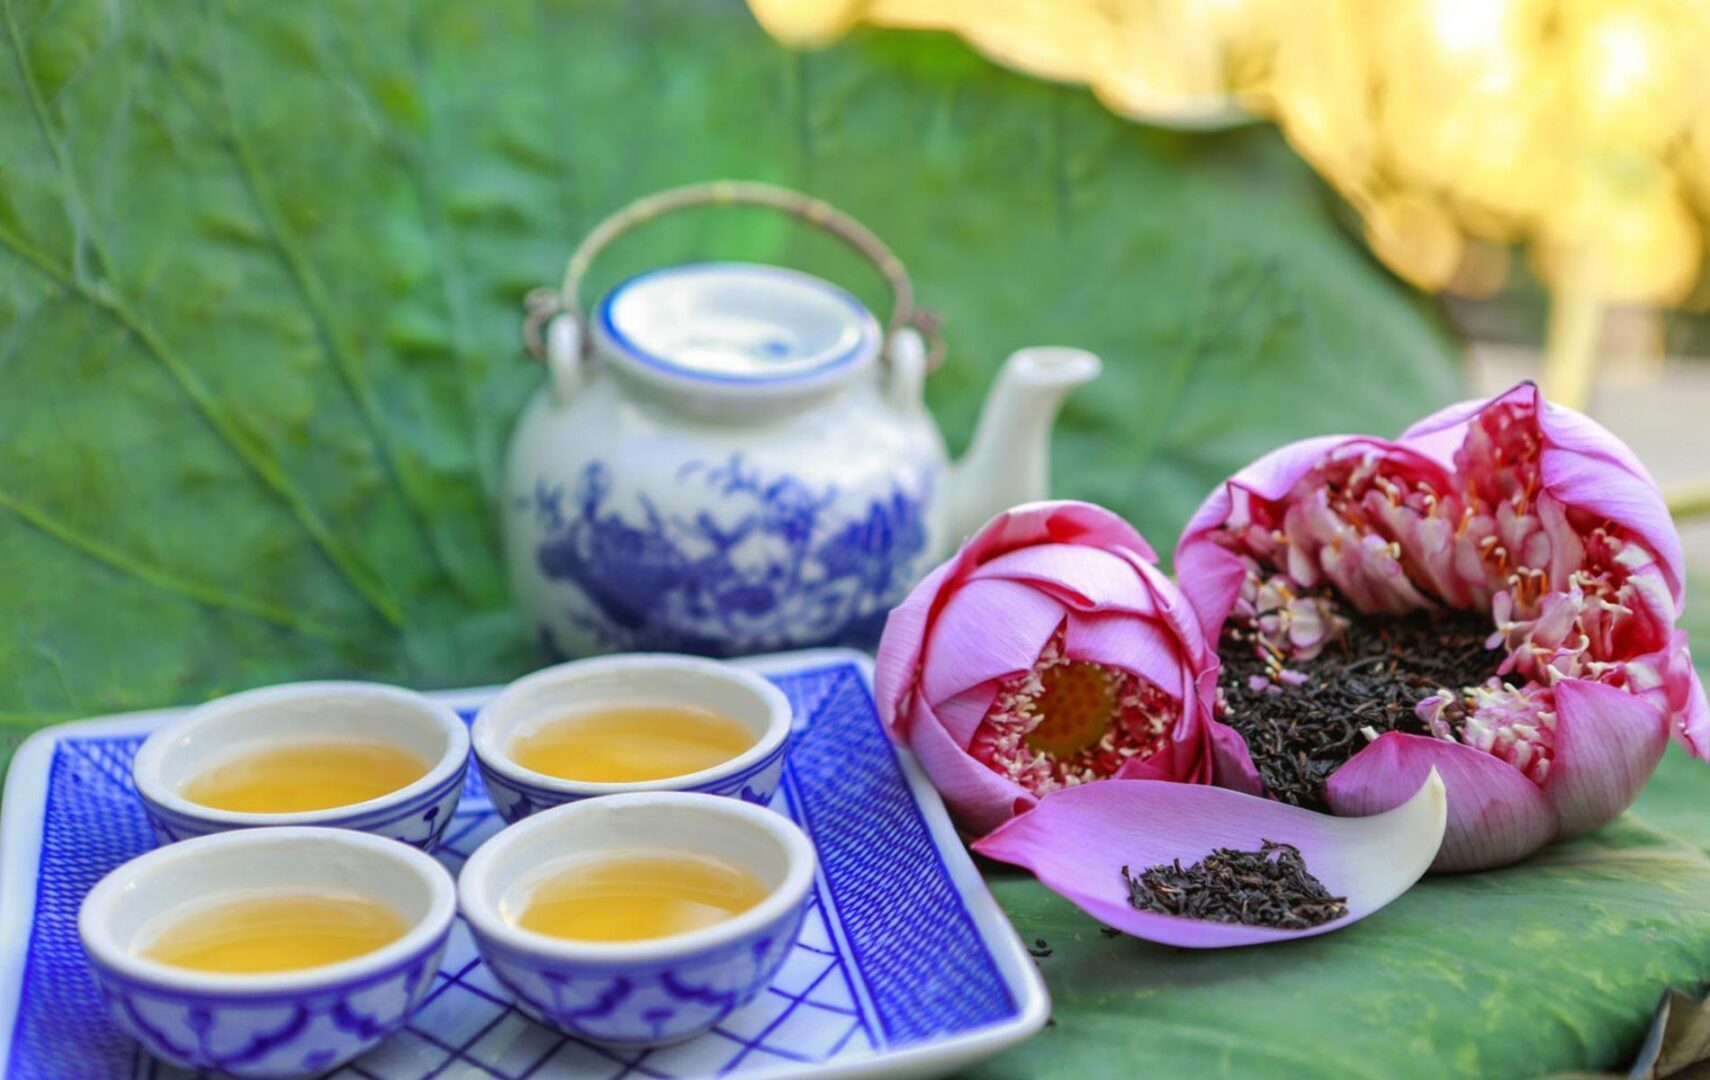 Vietnamese lotus tea always brings a pleasant & mild taste among other common scented teas.